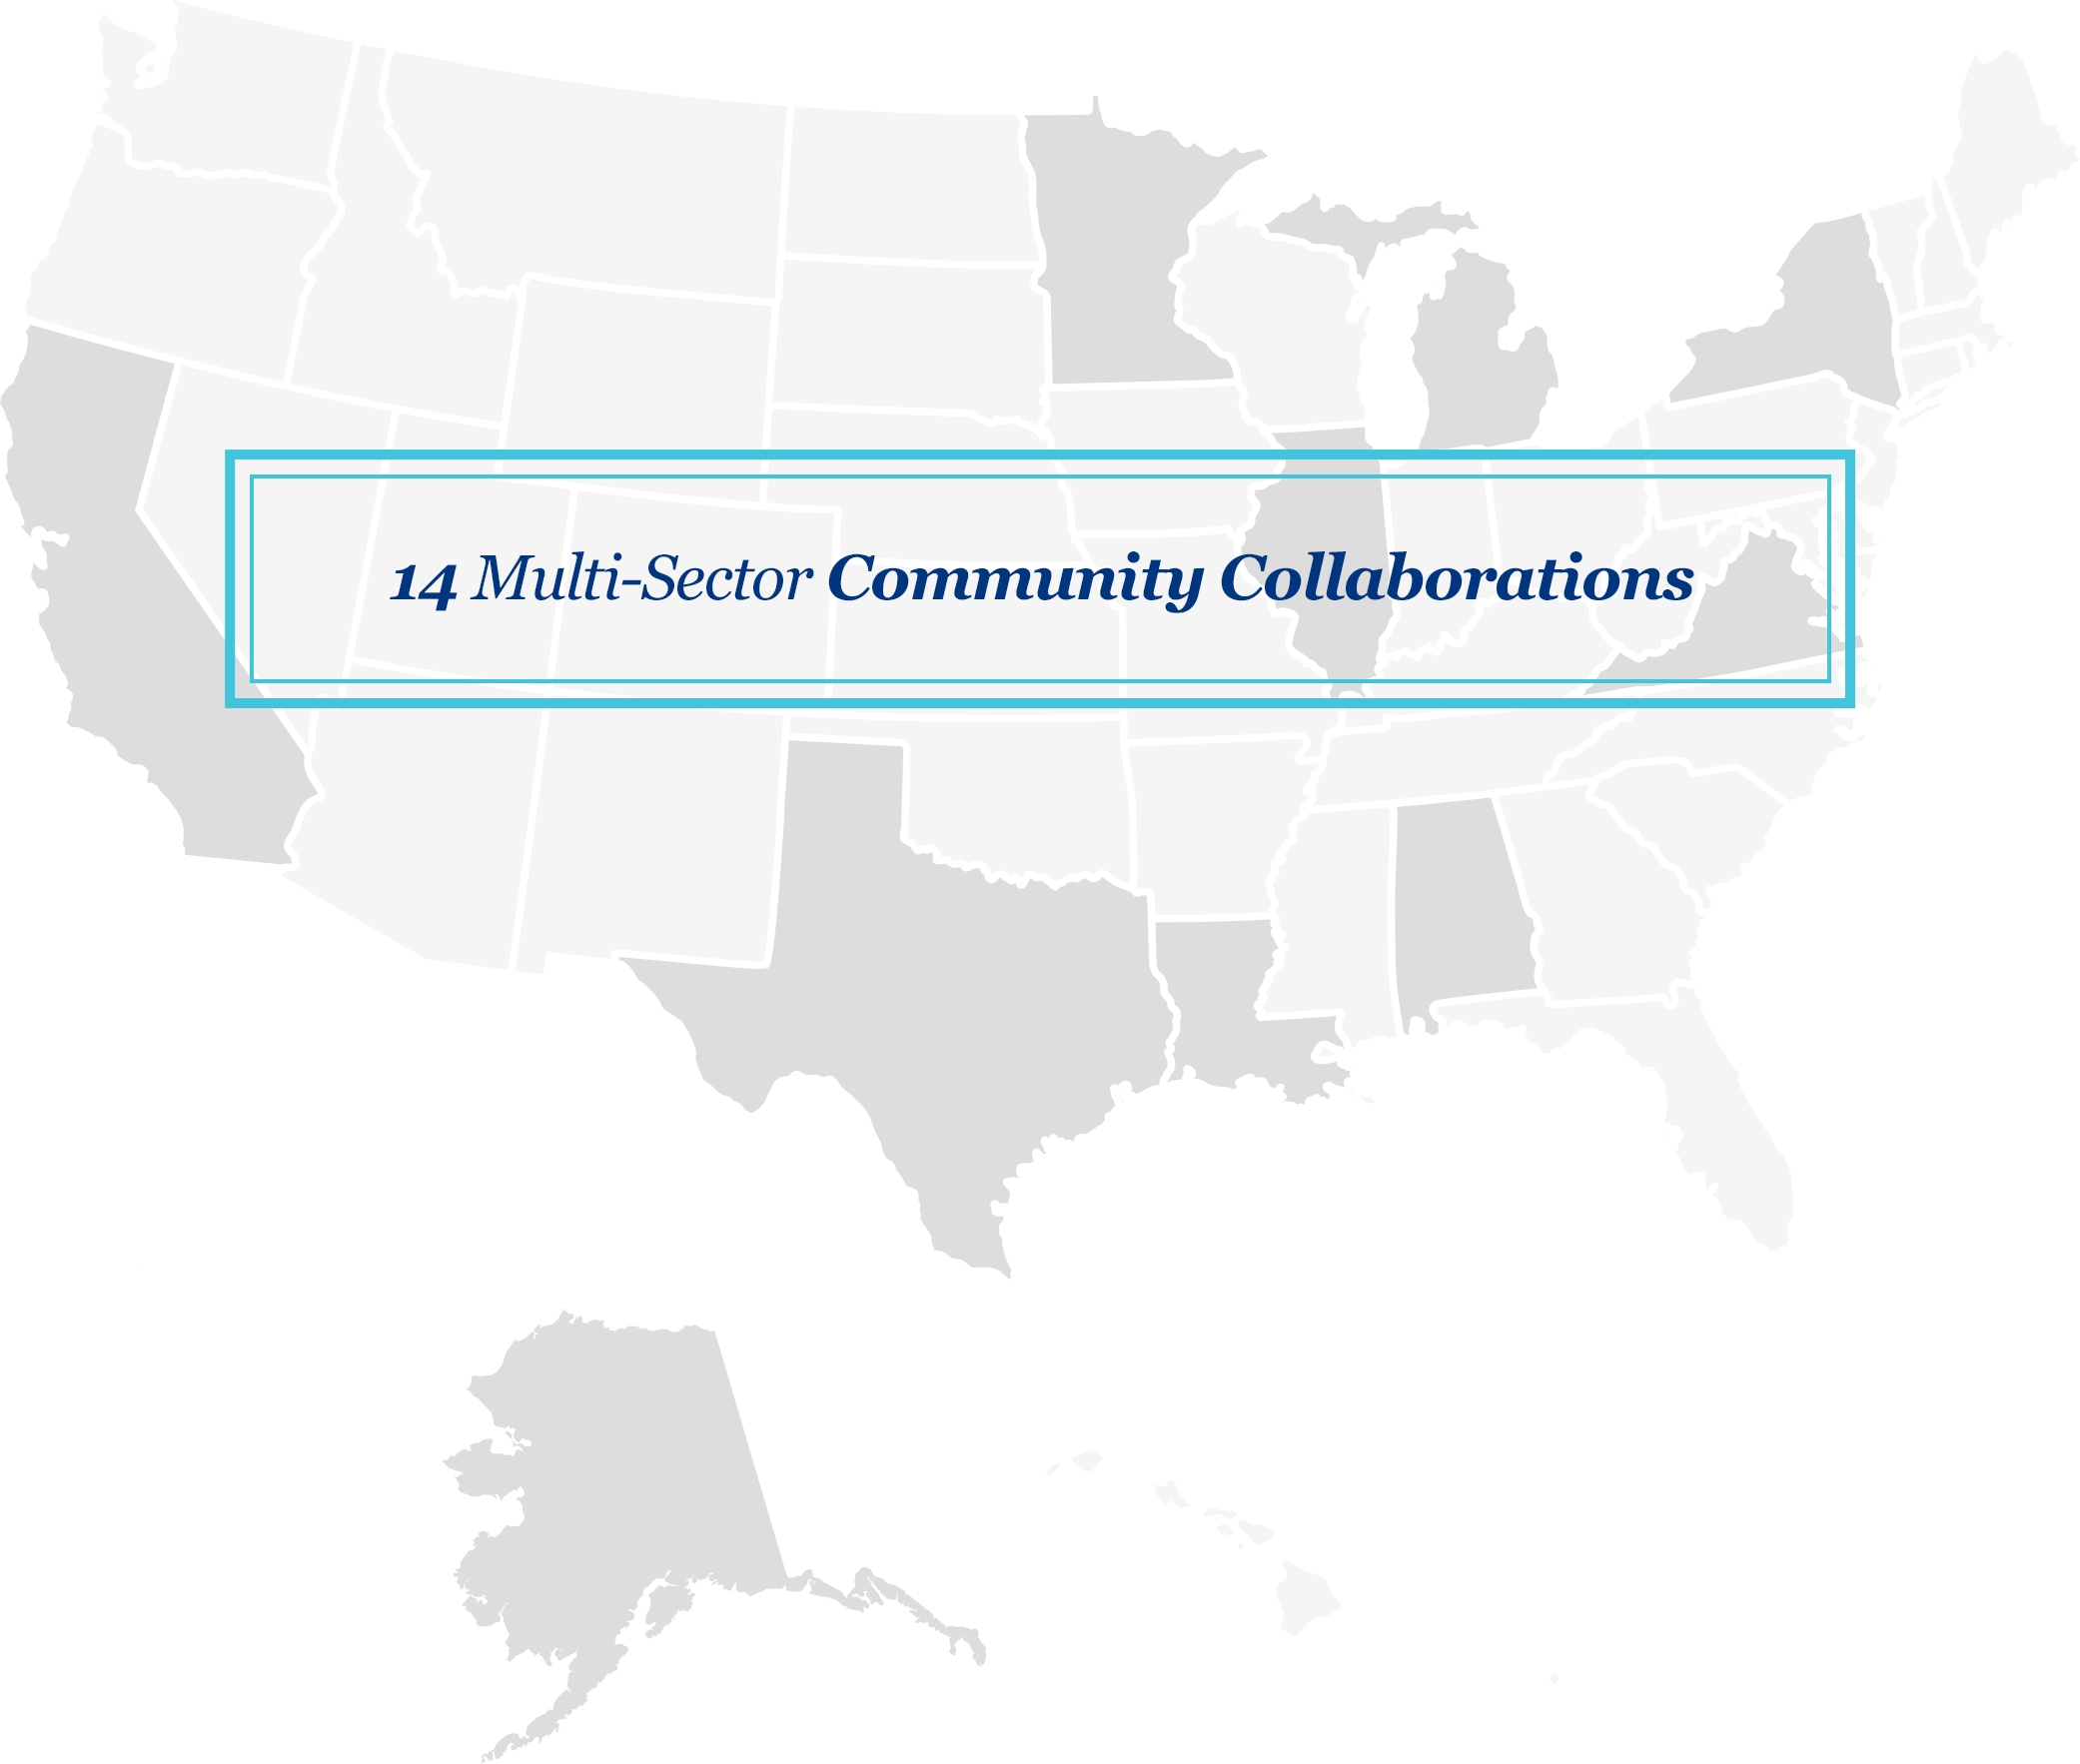 10 Grantees from 14 Communities